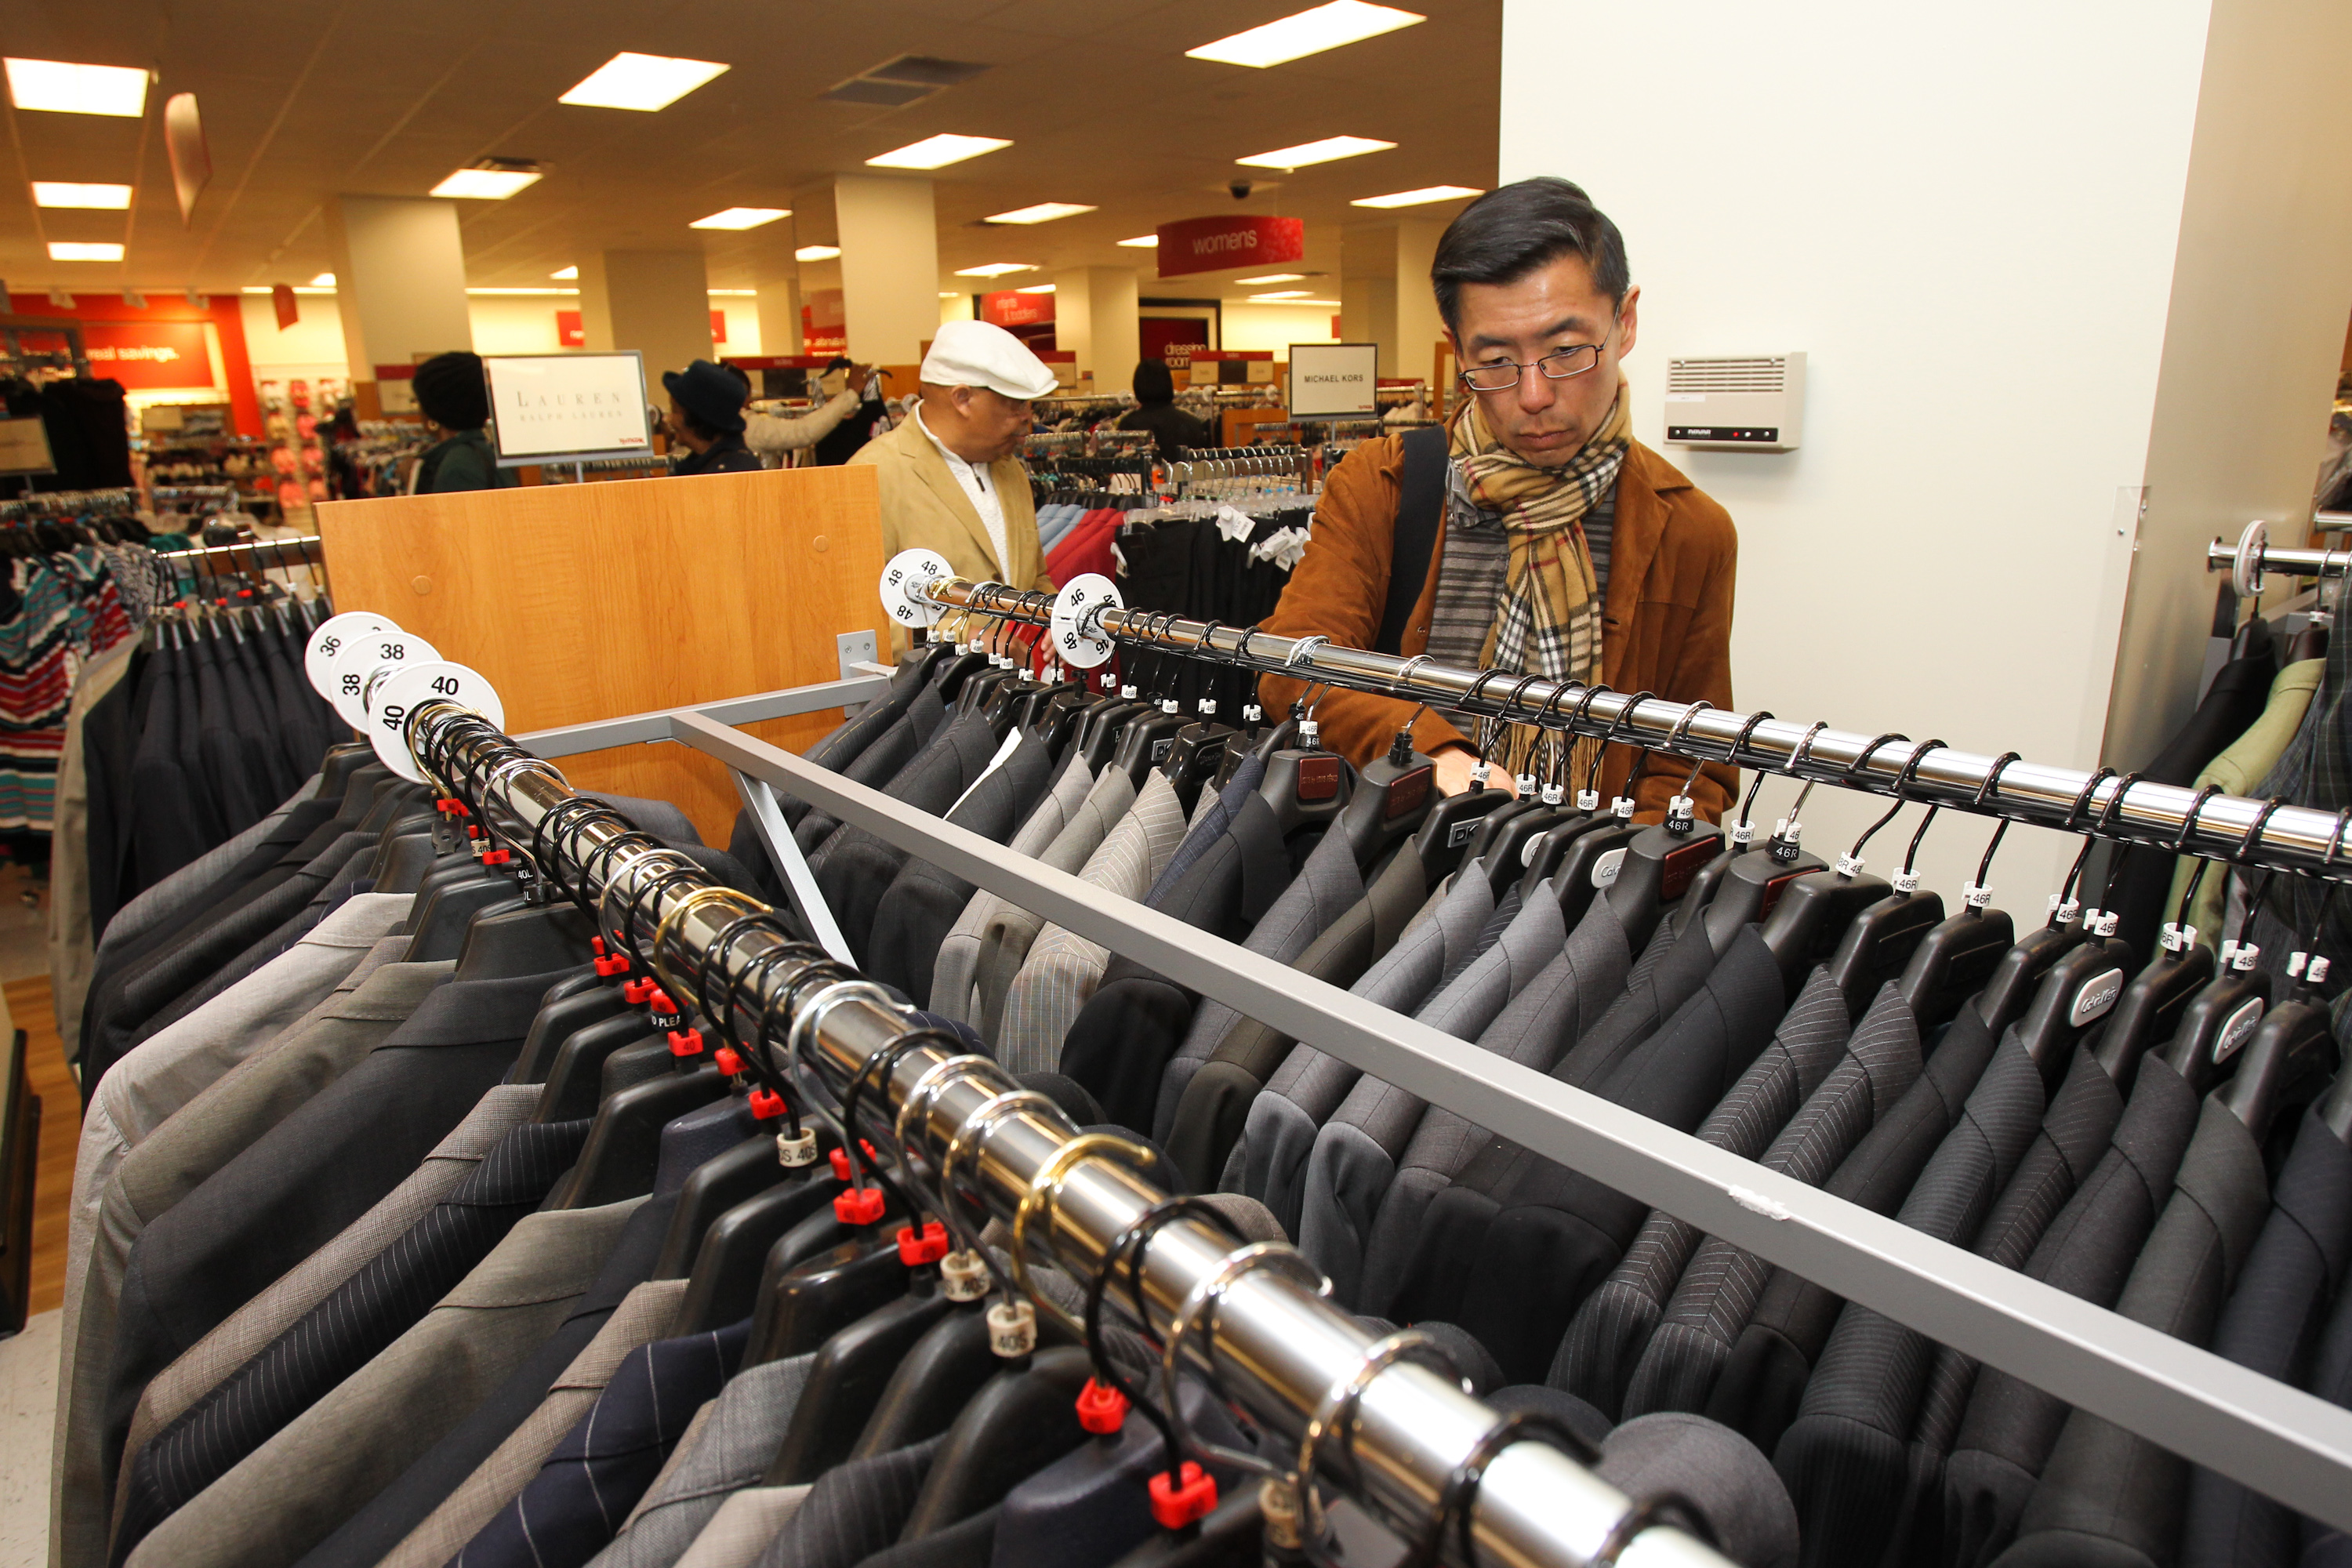 A customer shops at the opening of TJ Maxx's 1000th store on April 25, 2012 in Washington, DC.